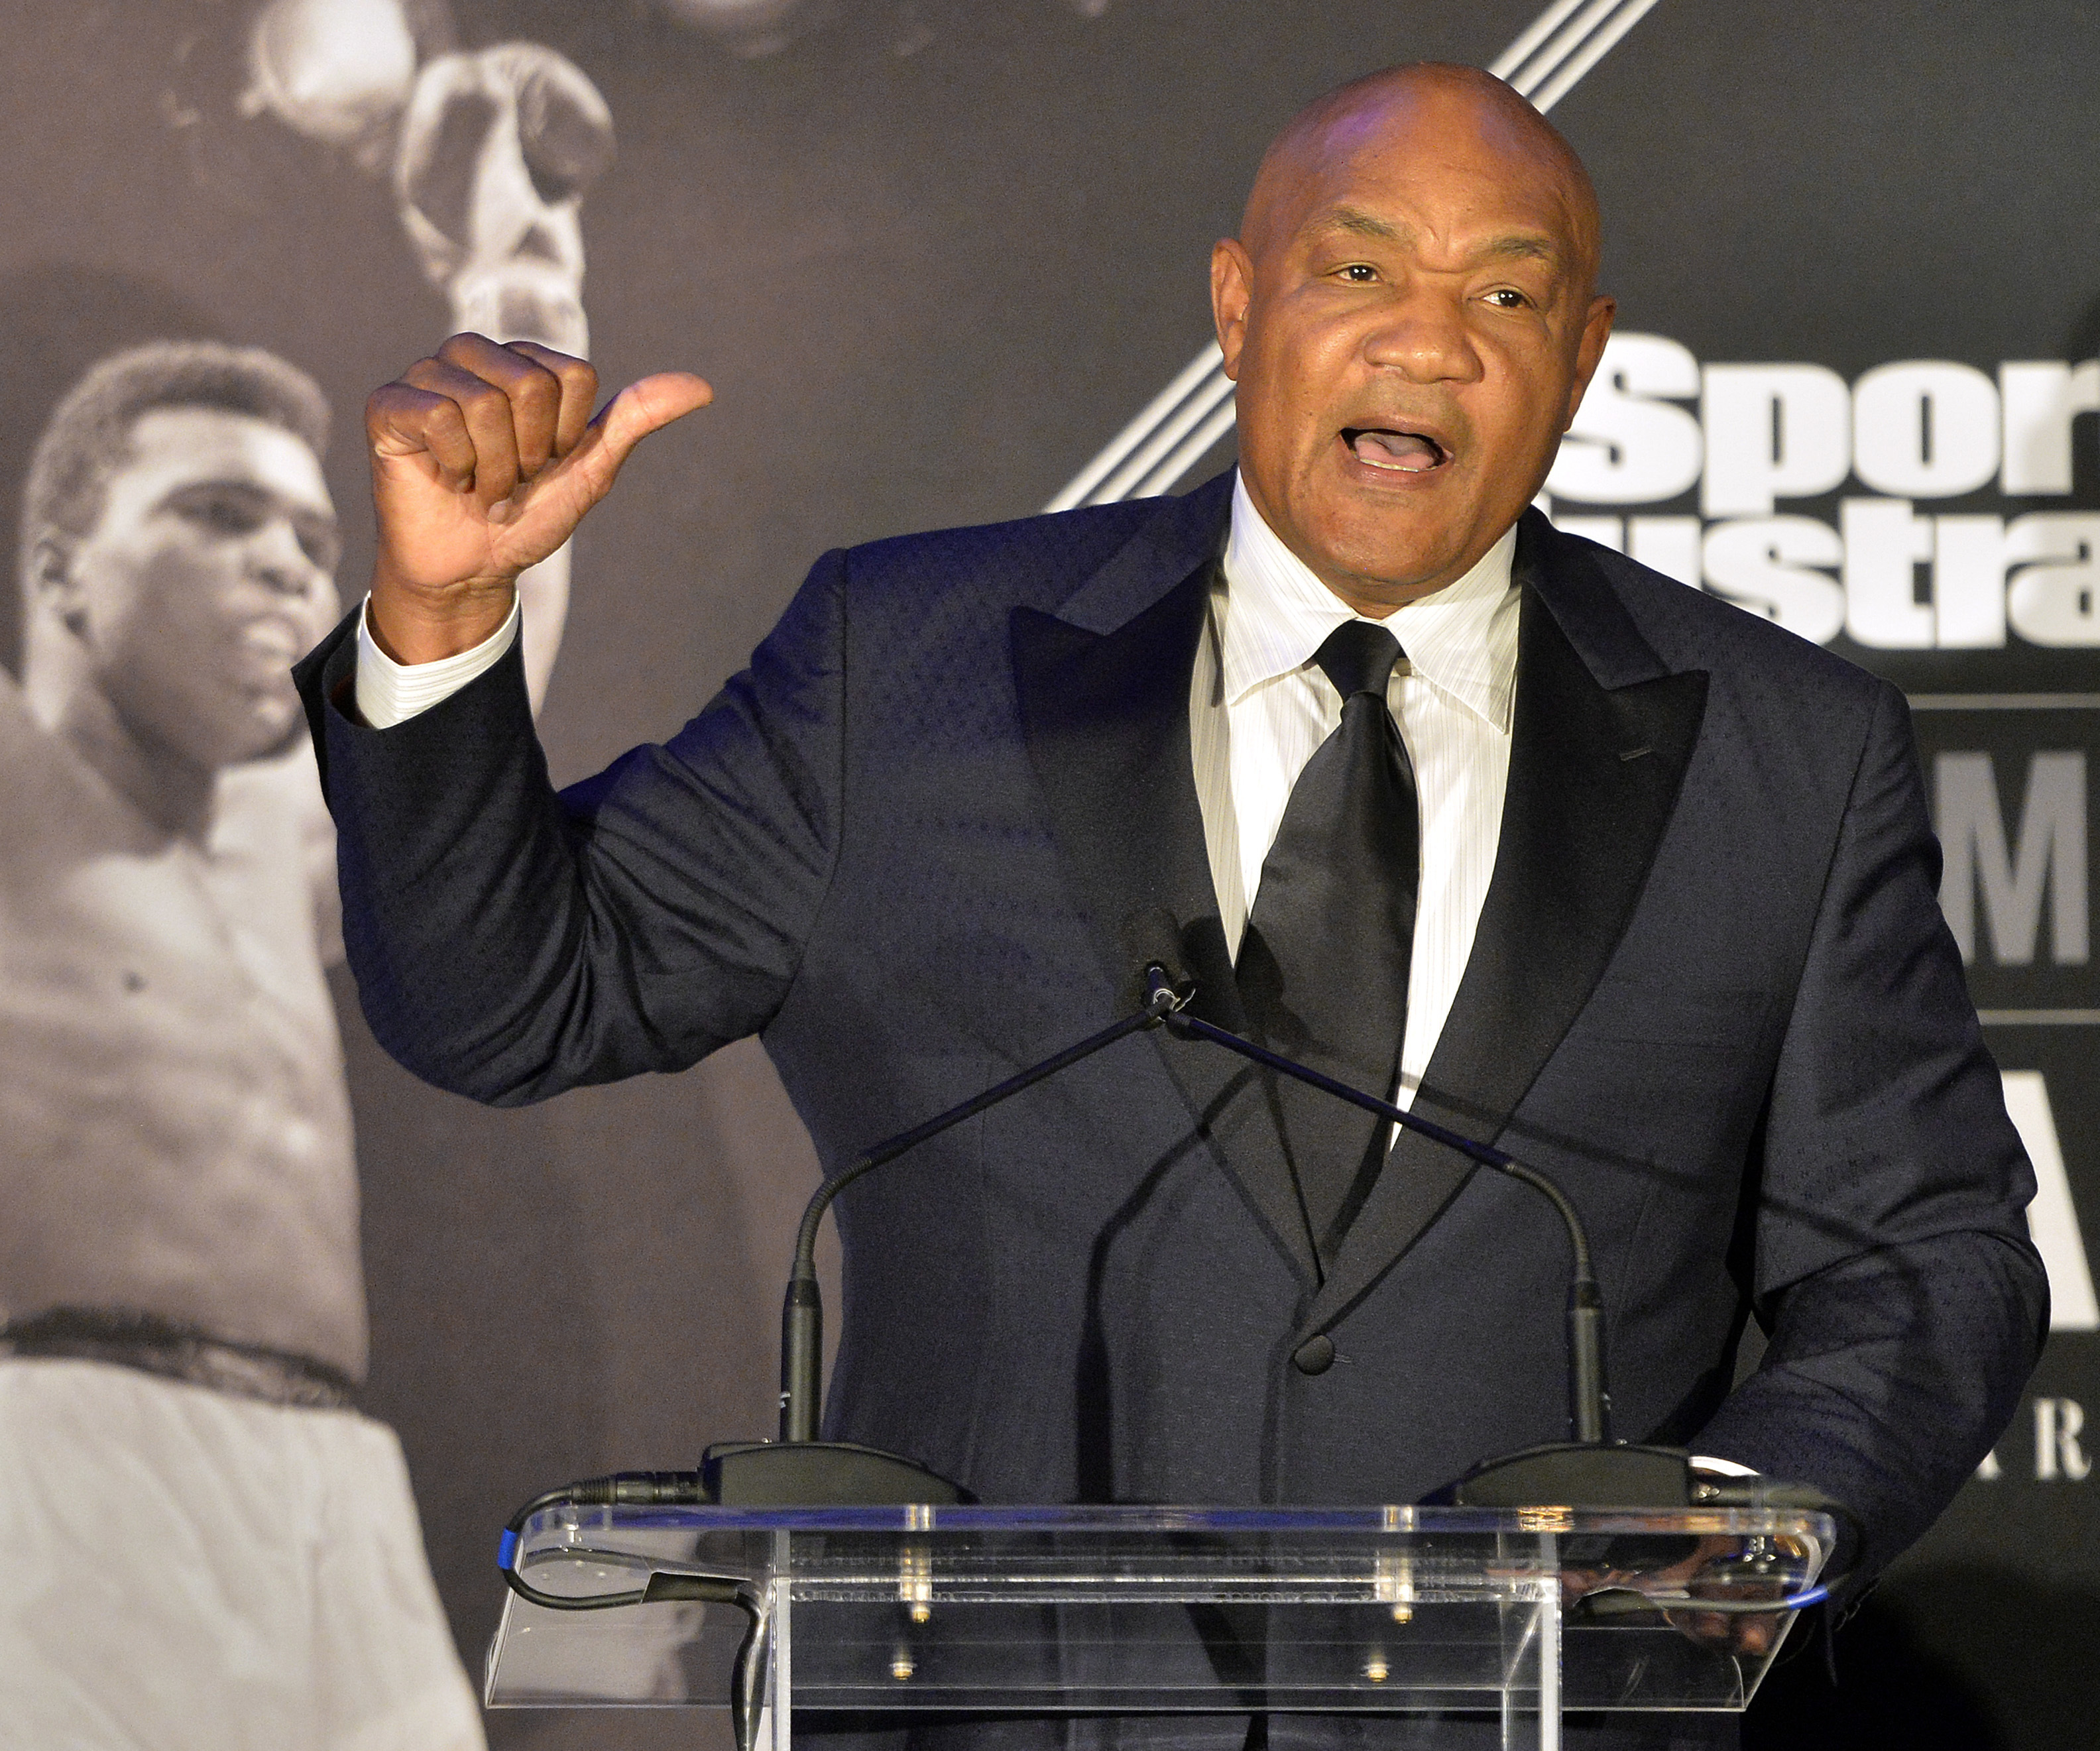 Former heavyweight boxing champion George Foreman speaks at the Sports Illustrated Legacy Awards in Louisville, Ky., in 2015.